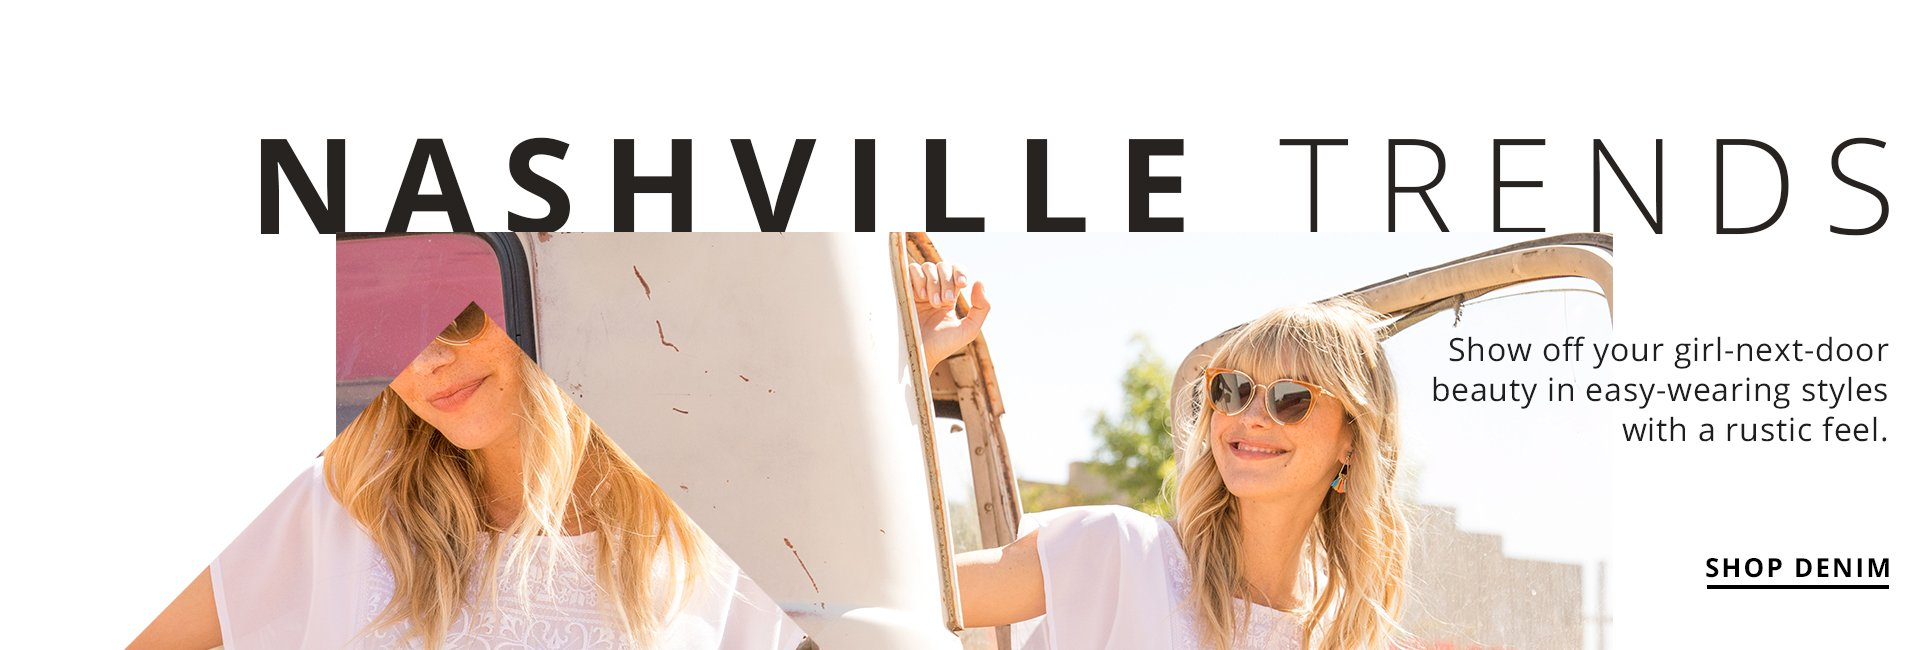 Nashville Trends. Show off your girl-next-door beauty in easy-wearing styles with a rustic feel. Shop Now,